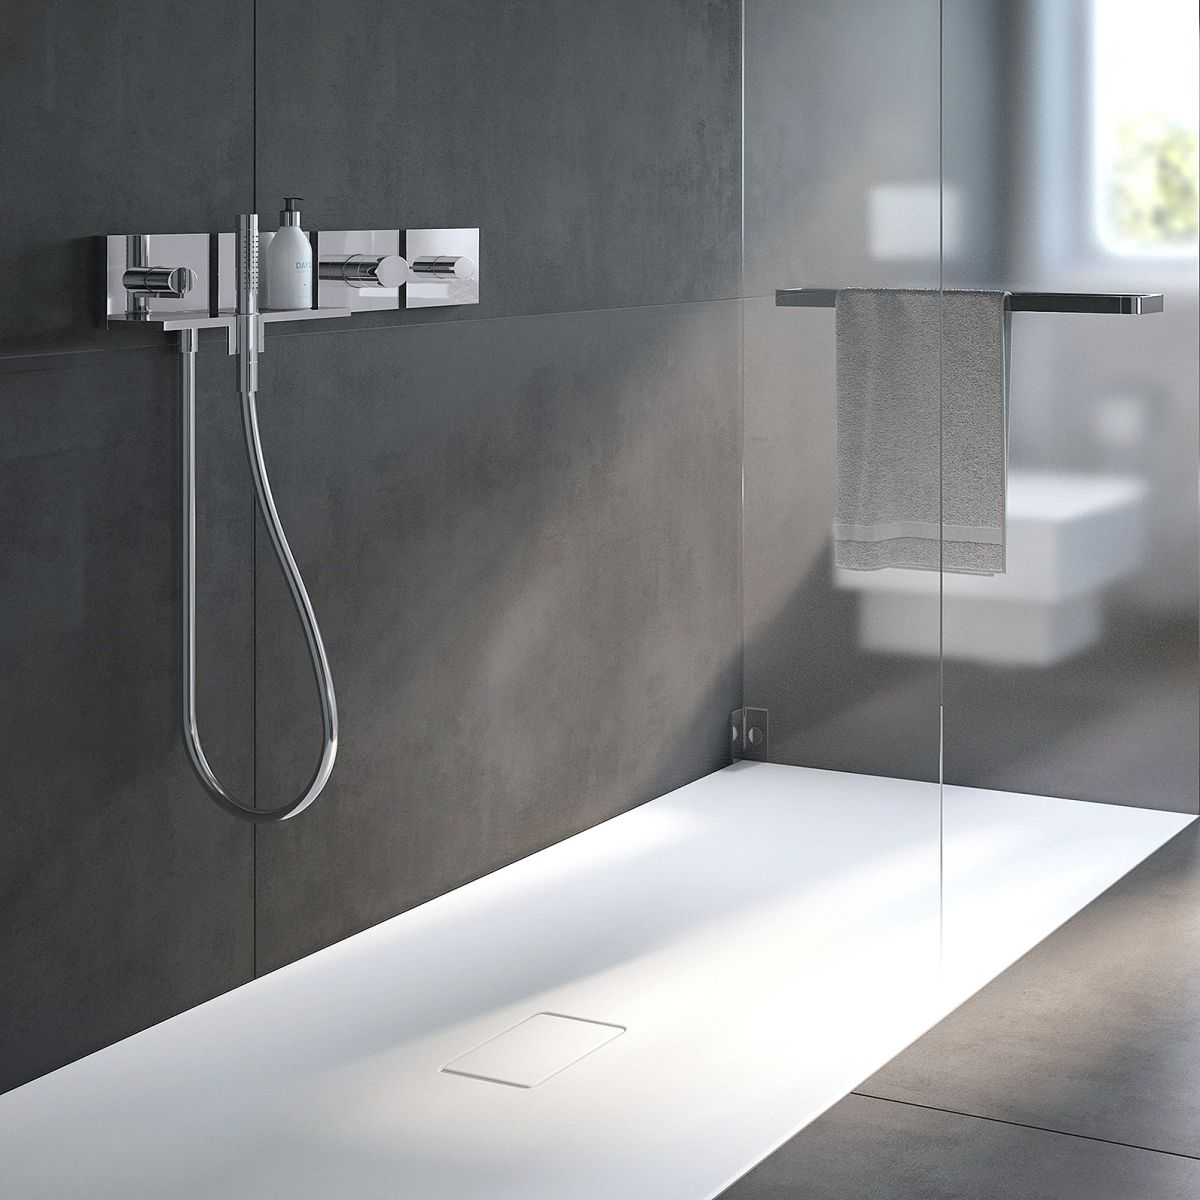 Duschtasse Conoflat Kaldewei Conoflat Rectangular Shower Tray